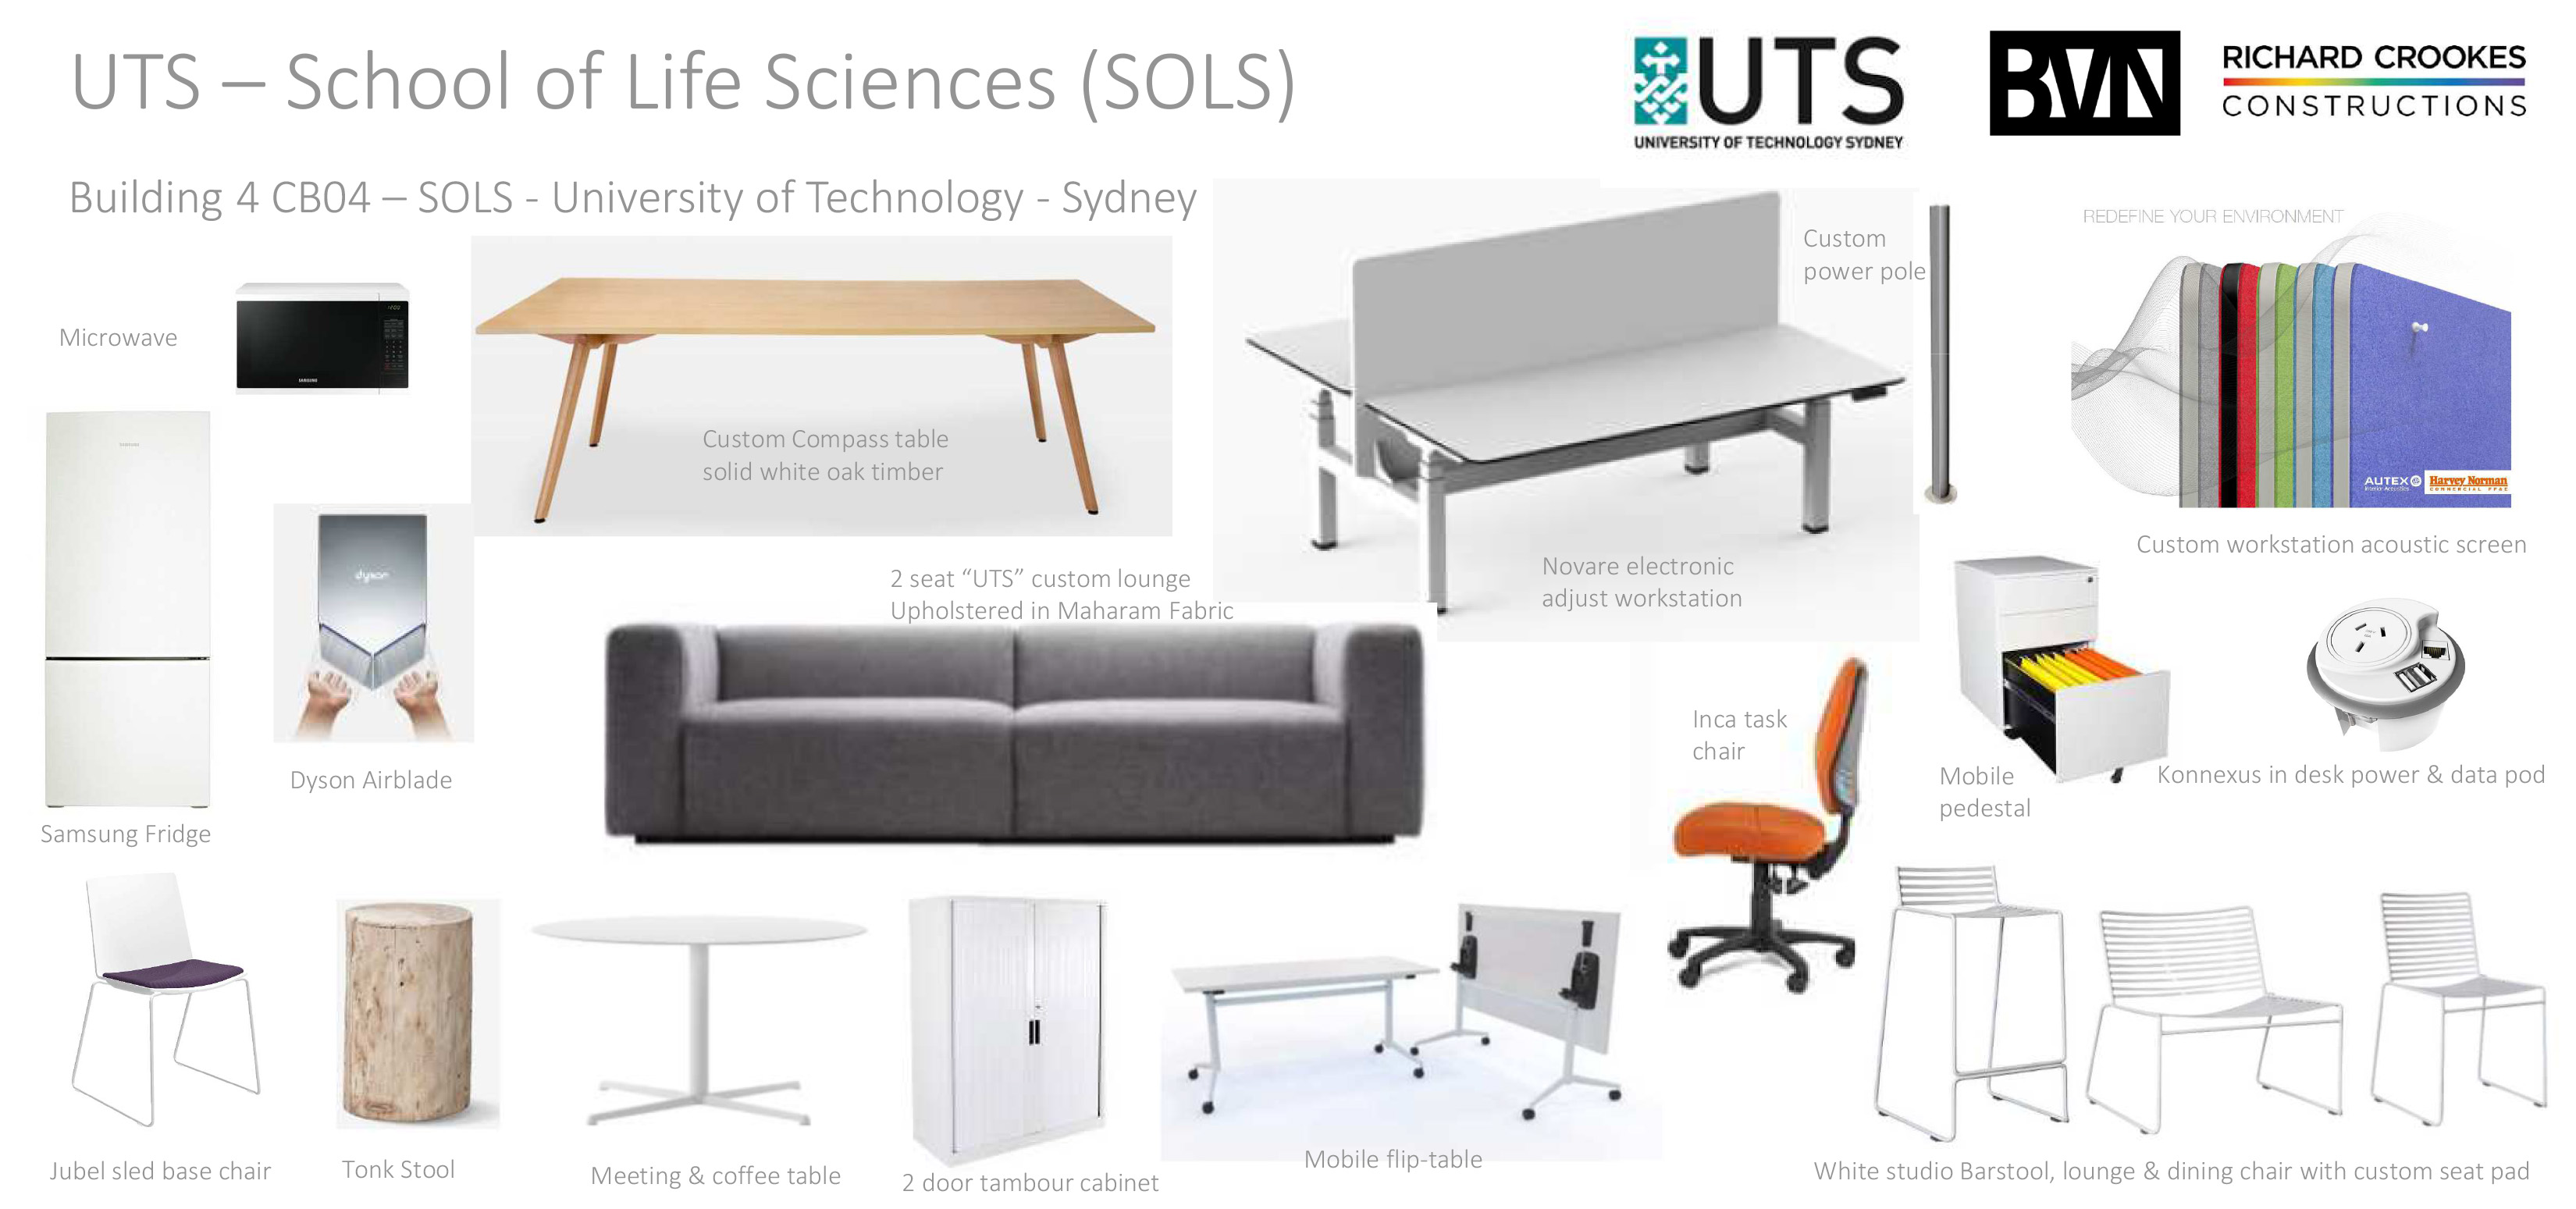 UTS School of Life Sciences (SOLS) - Project Case Study